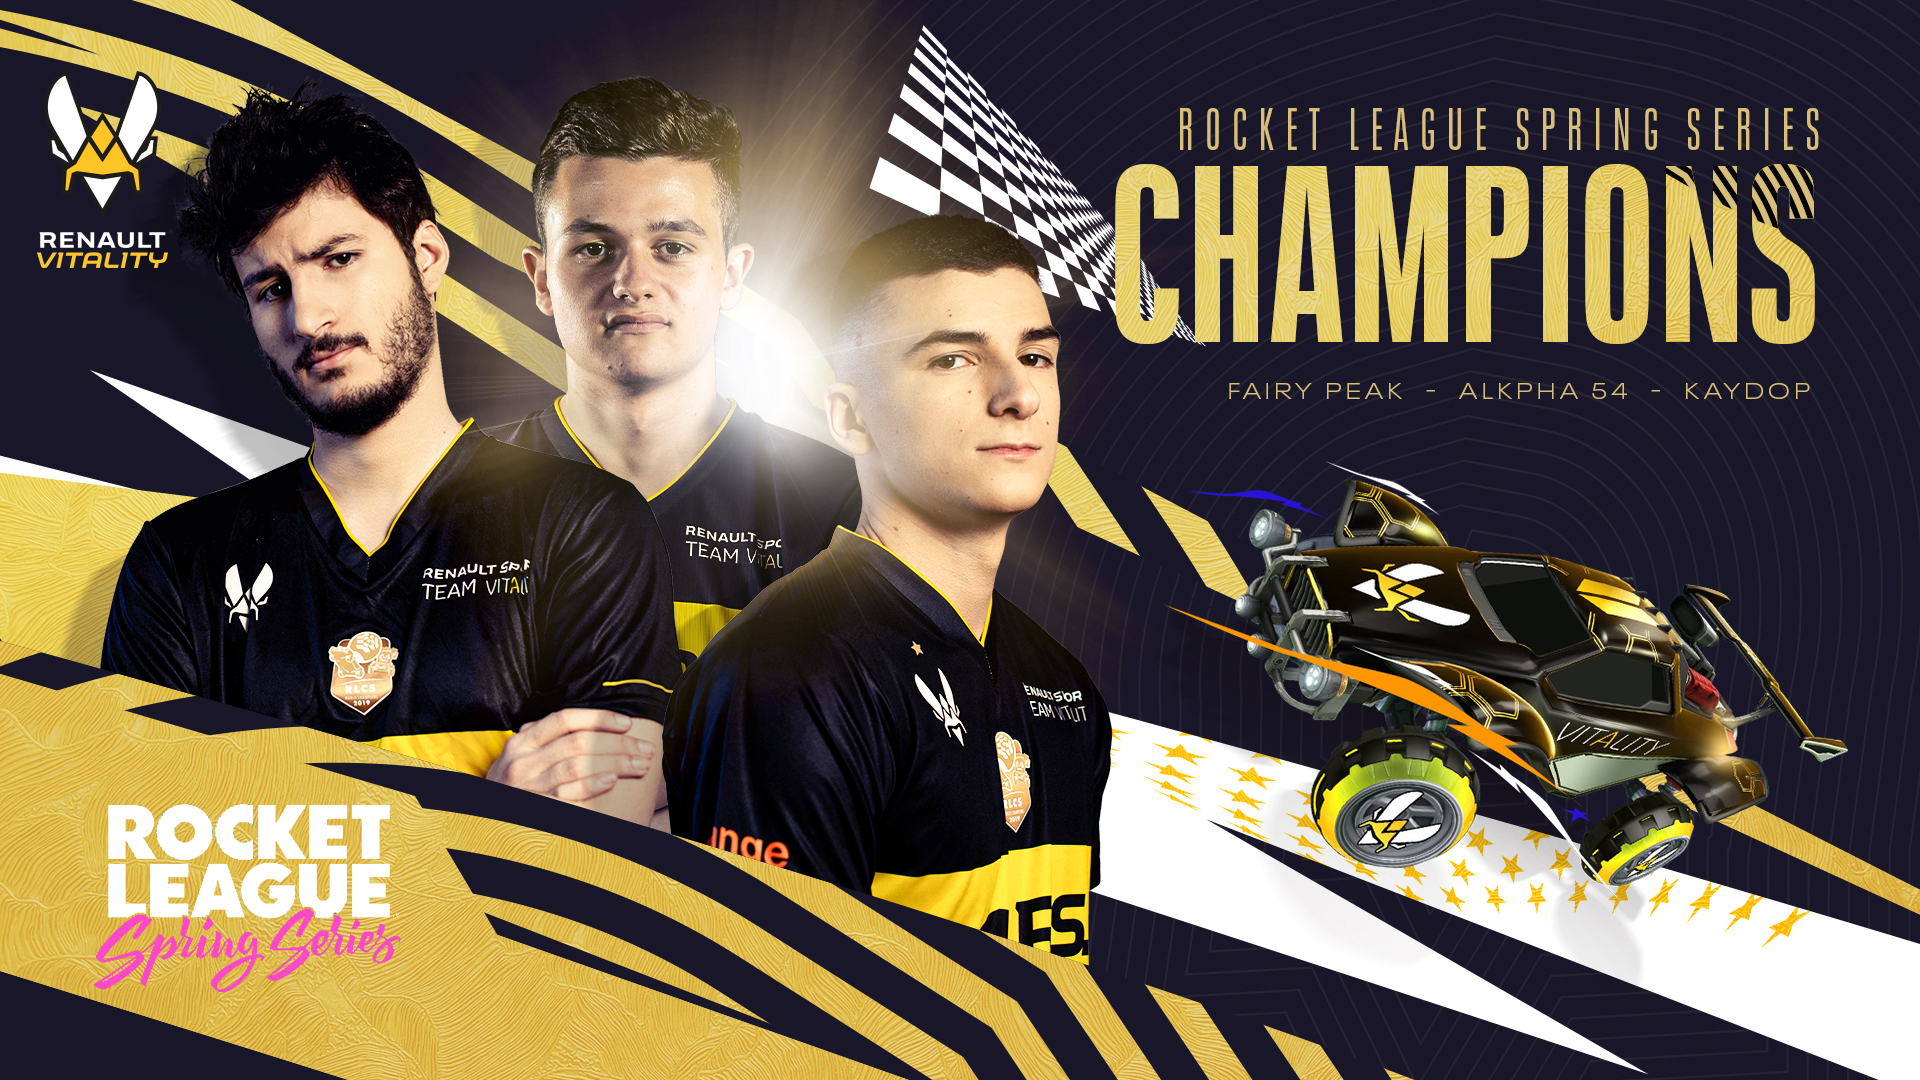 renault vitality rocket league spring series